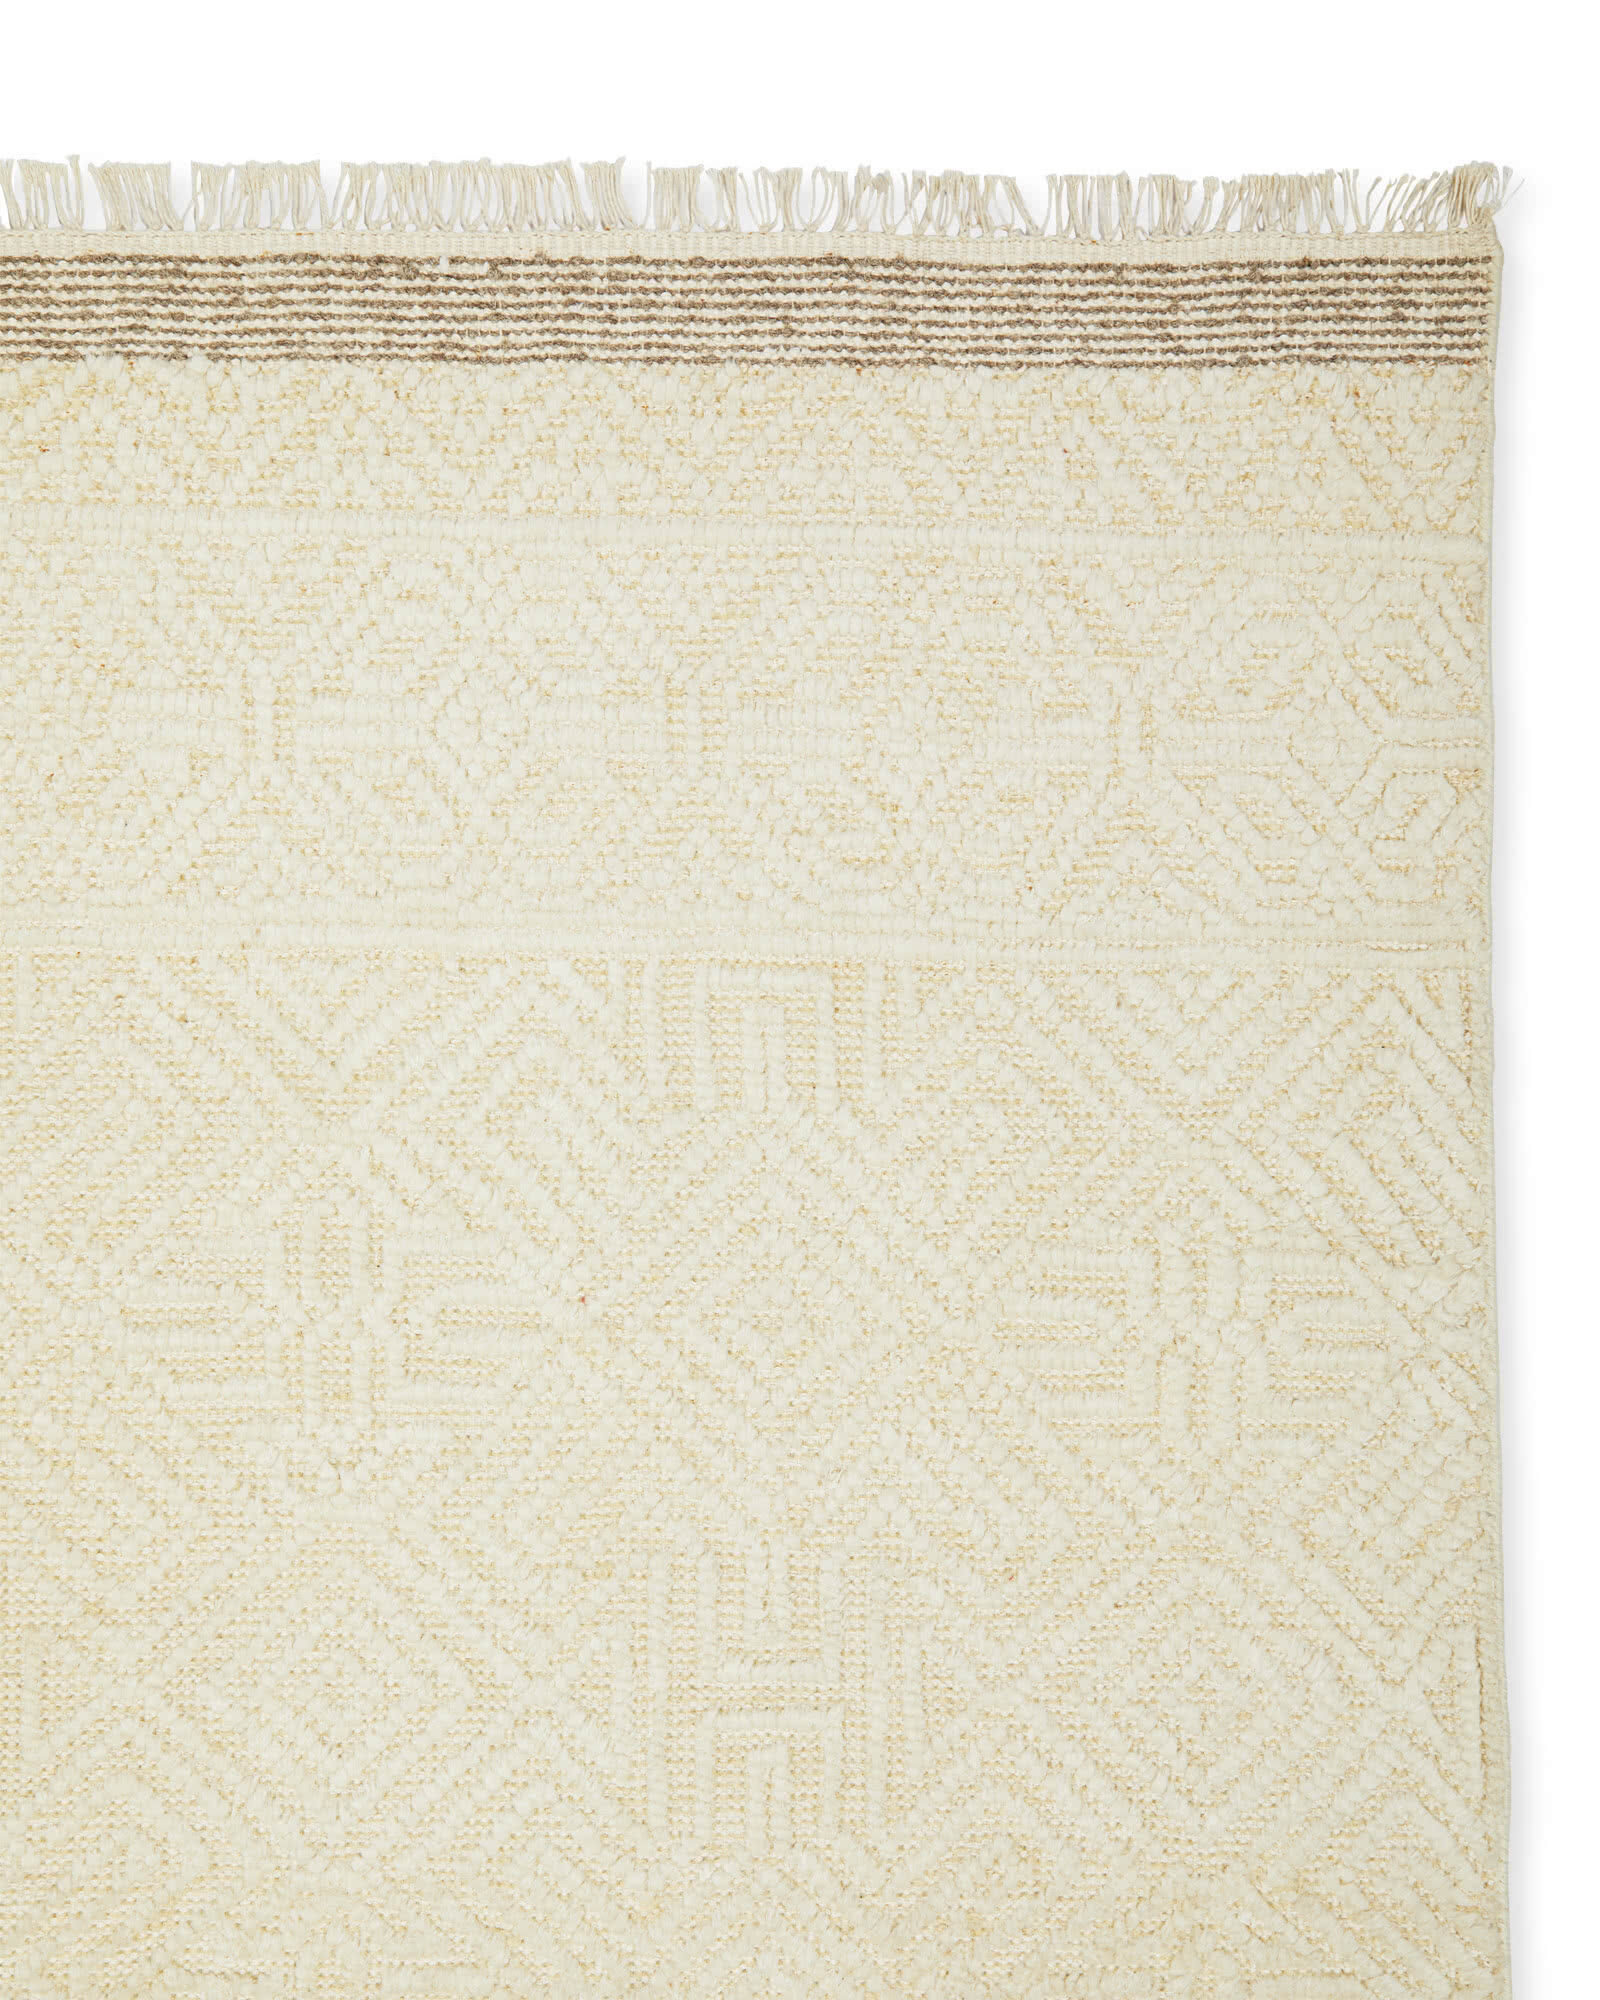 Satterlee Hand-Knotted Rug,